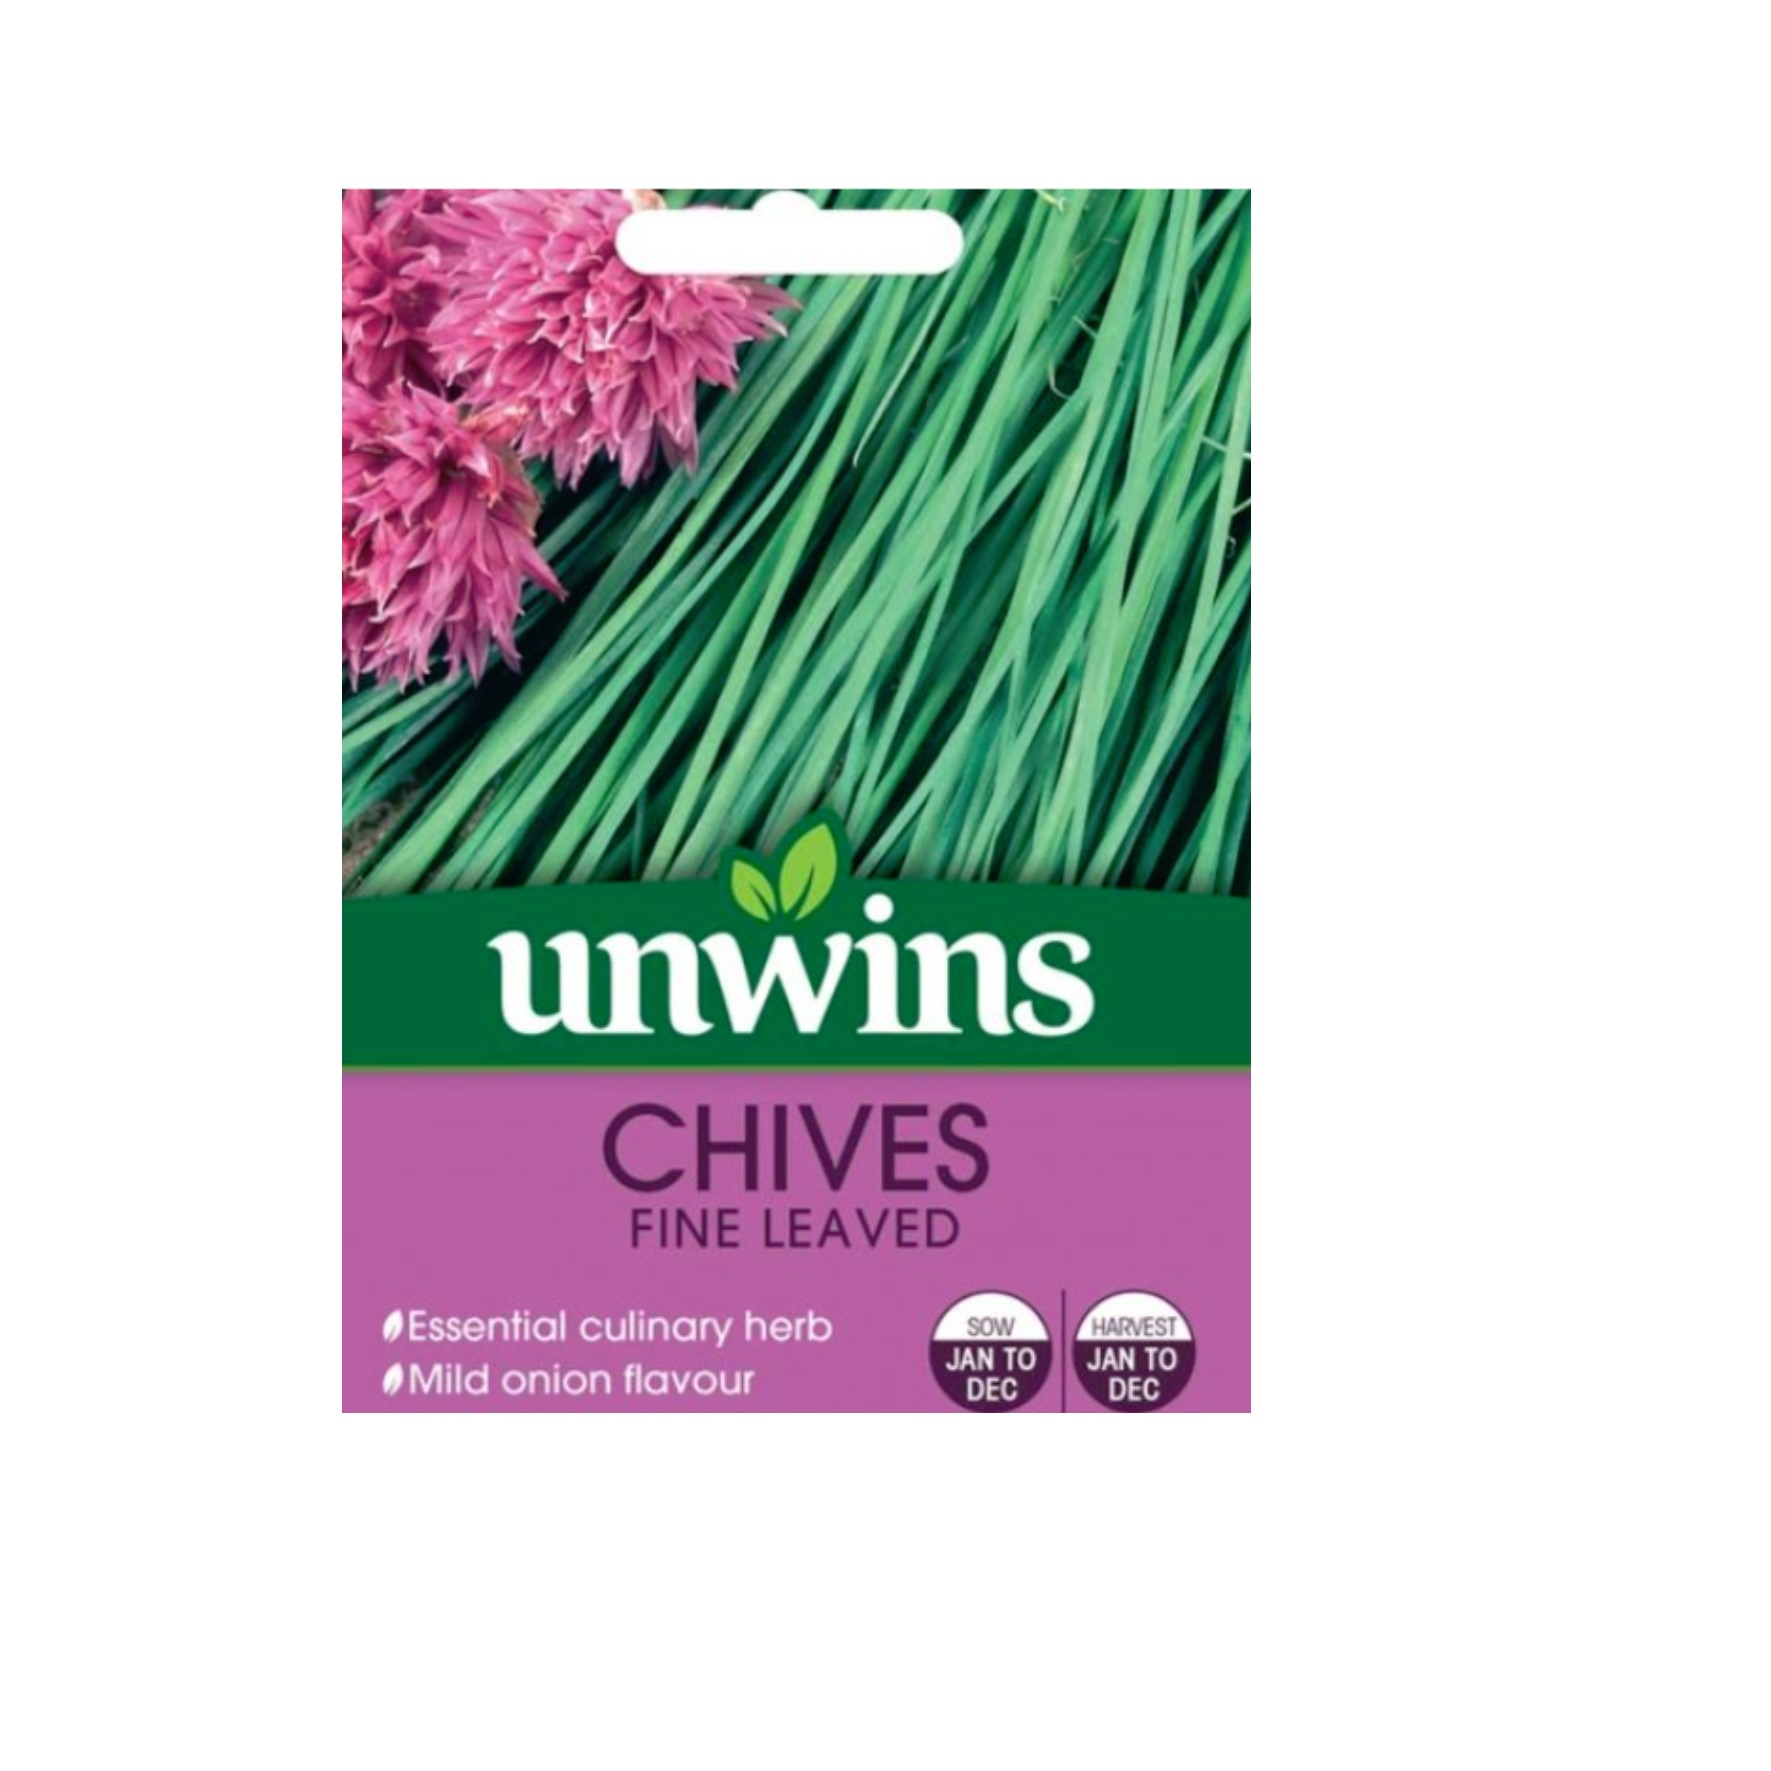 Fine Leaved Chive seeds